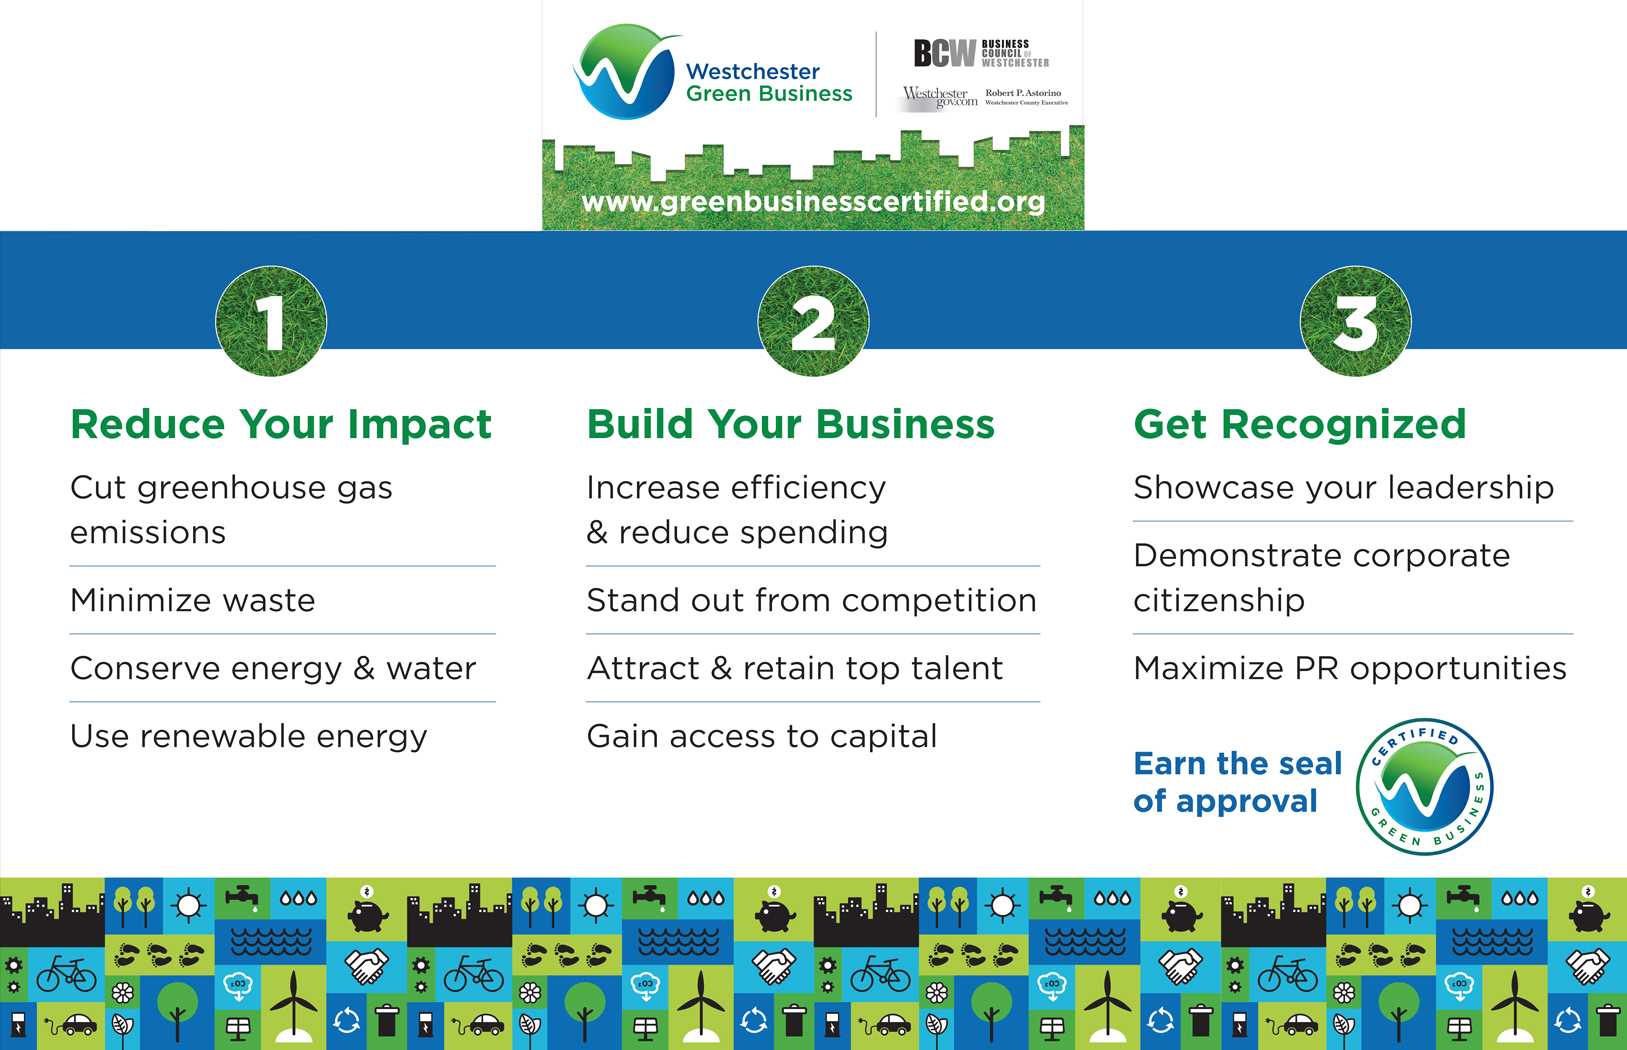 Westchester Green Business